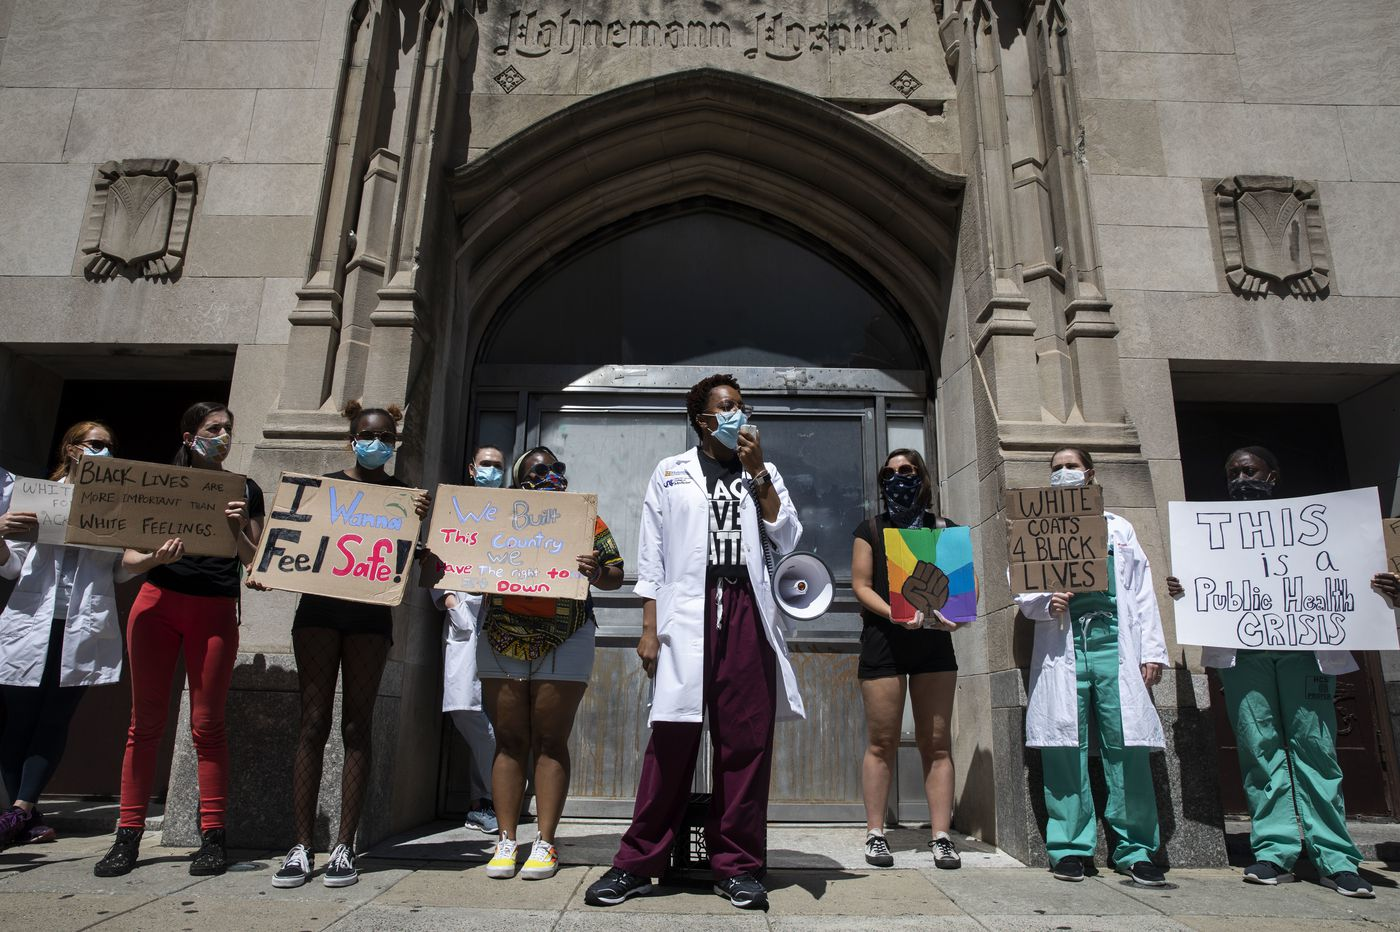 The loss of Hahnemann resonates a year later as COVID-19 and Black Lives Matter protests roil Philadelphia